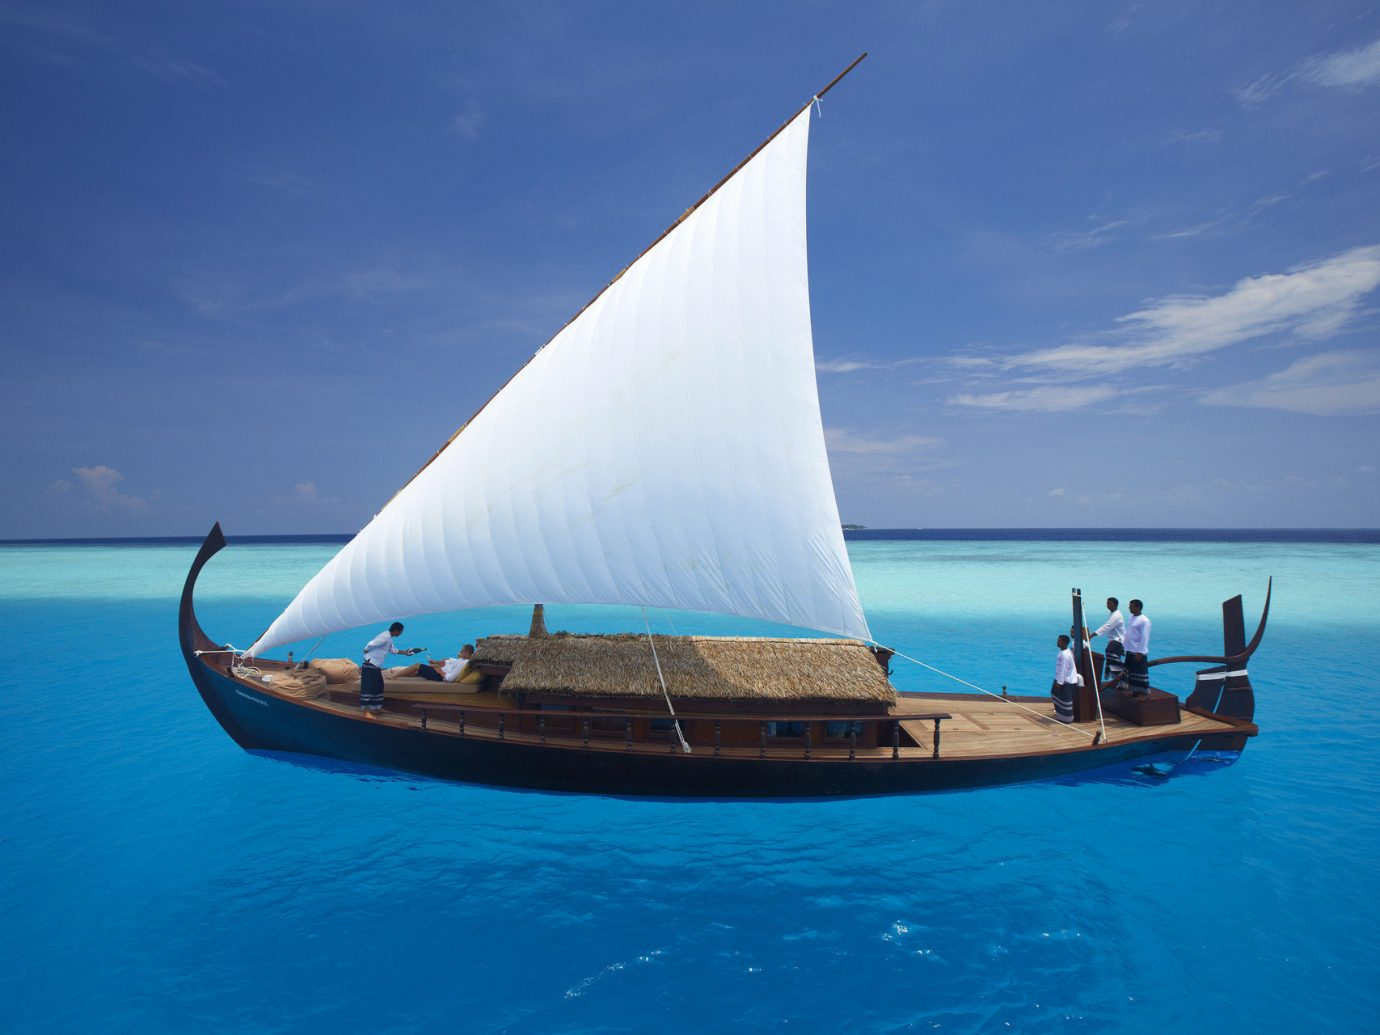 Boat calm clear water isolation Luxury Ocean people private remote rendering sailboat serene Trip Ideas turquoise water sky watercraft outdoor transport vehicle sail sailing ship Sea sailing blue sailing vessel ship schooner yacht bay clear day